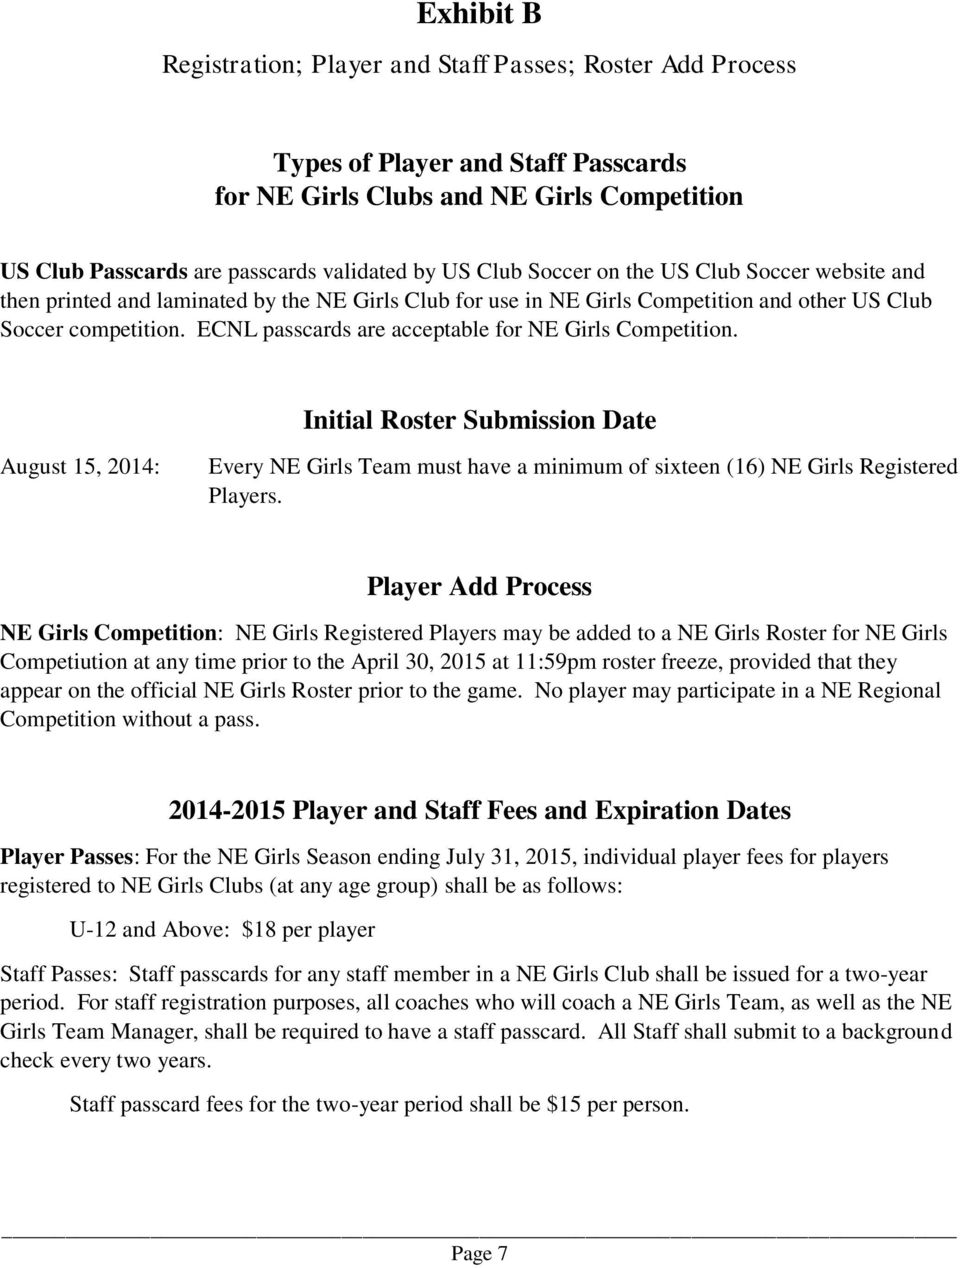 ECNL passcards are acceptable for NE Girls Competition. Initial Roster Submission Date August 15, 2014: Every NE Girls Team must have a minimum of sixteen (16) NE Girls Registered Players.